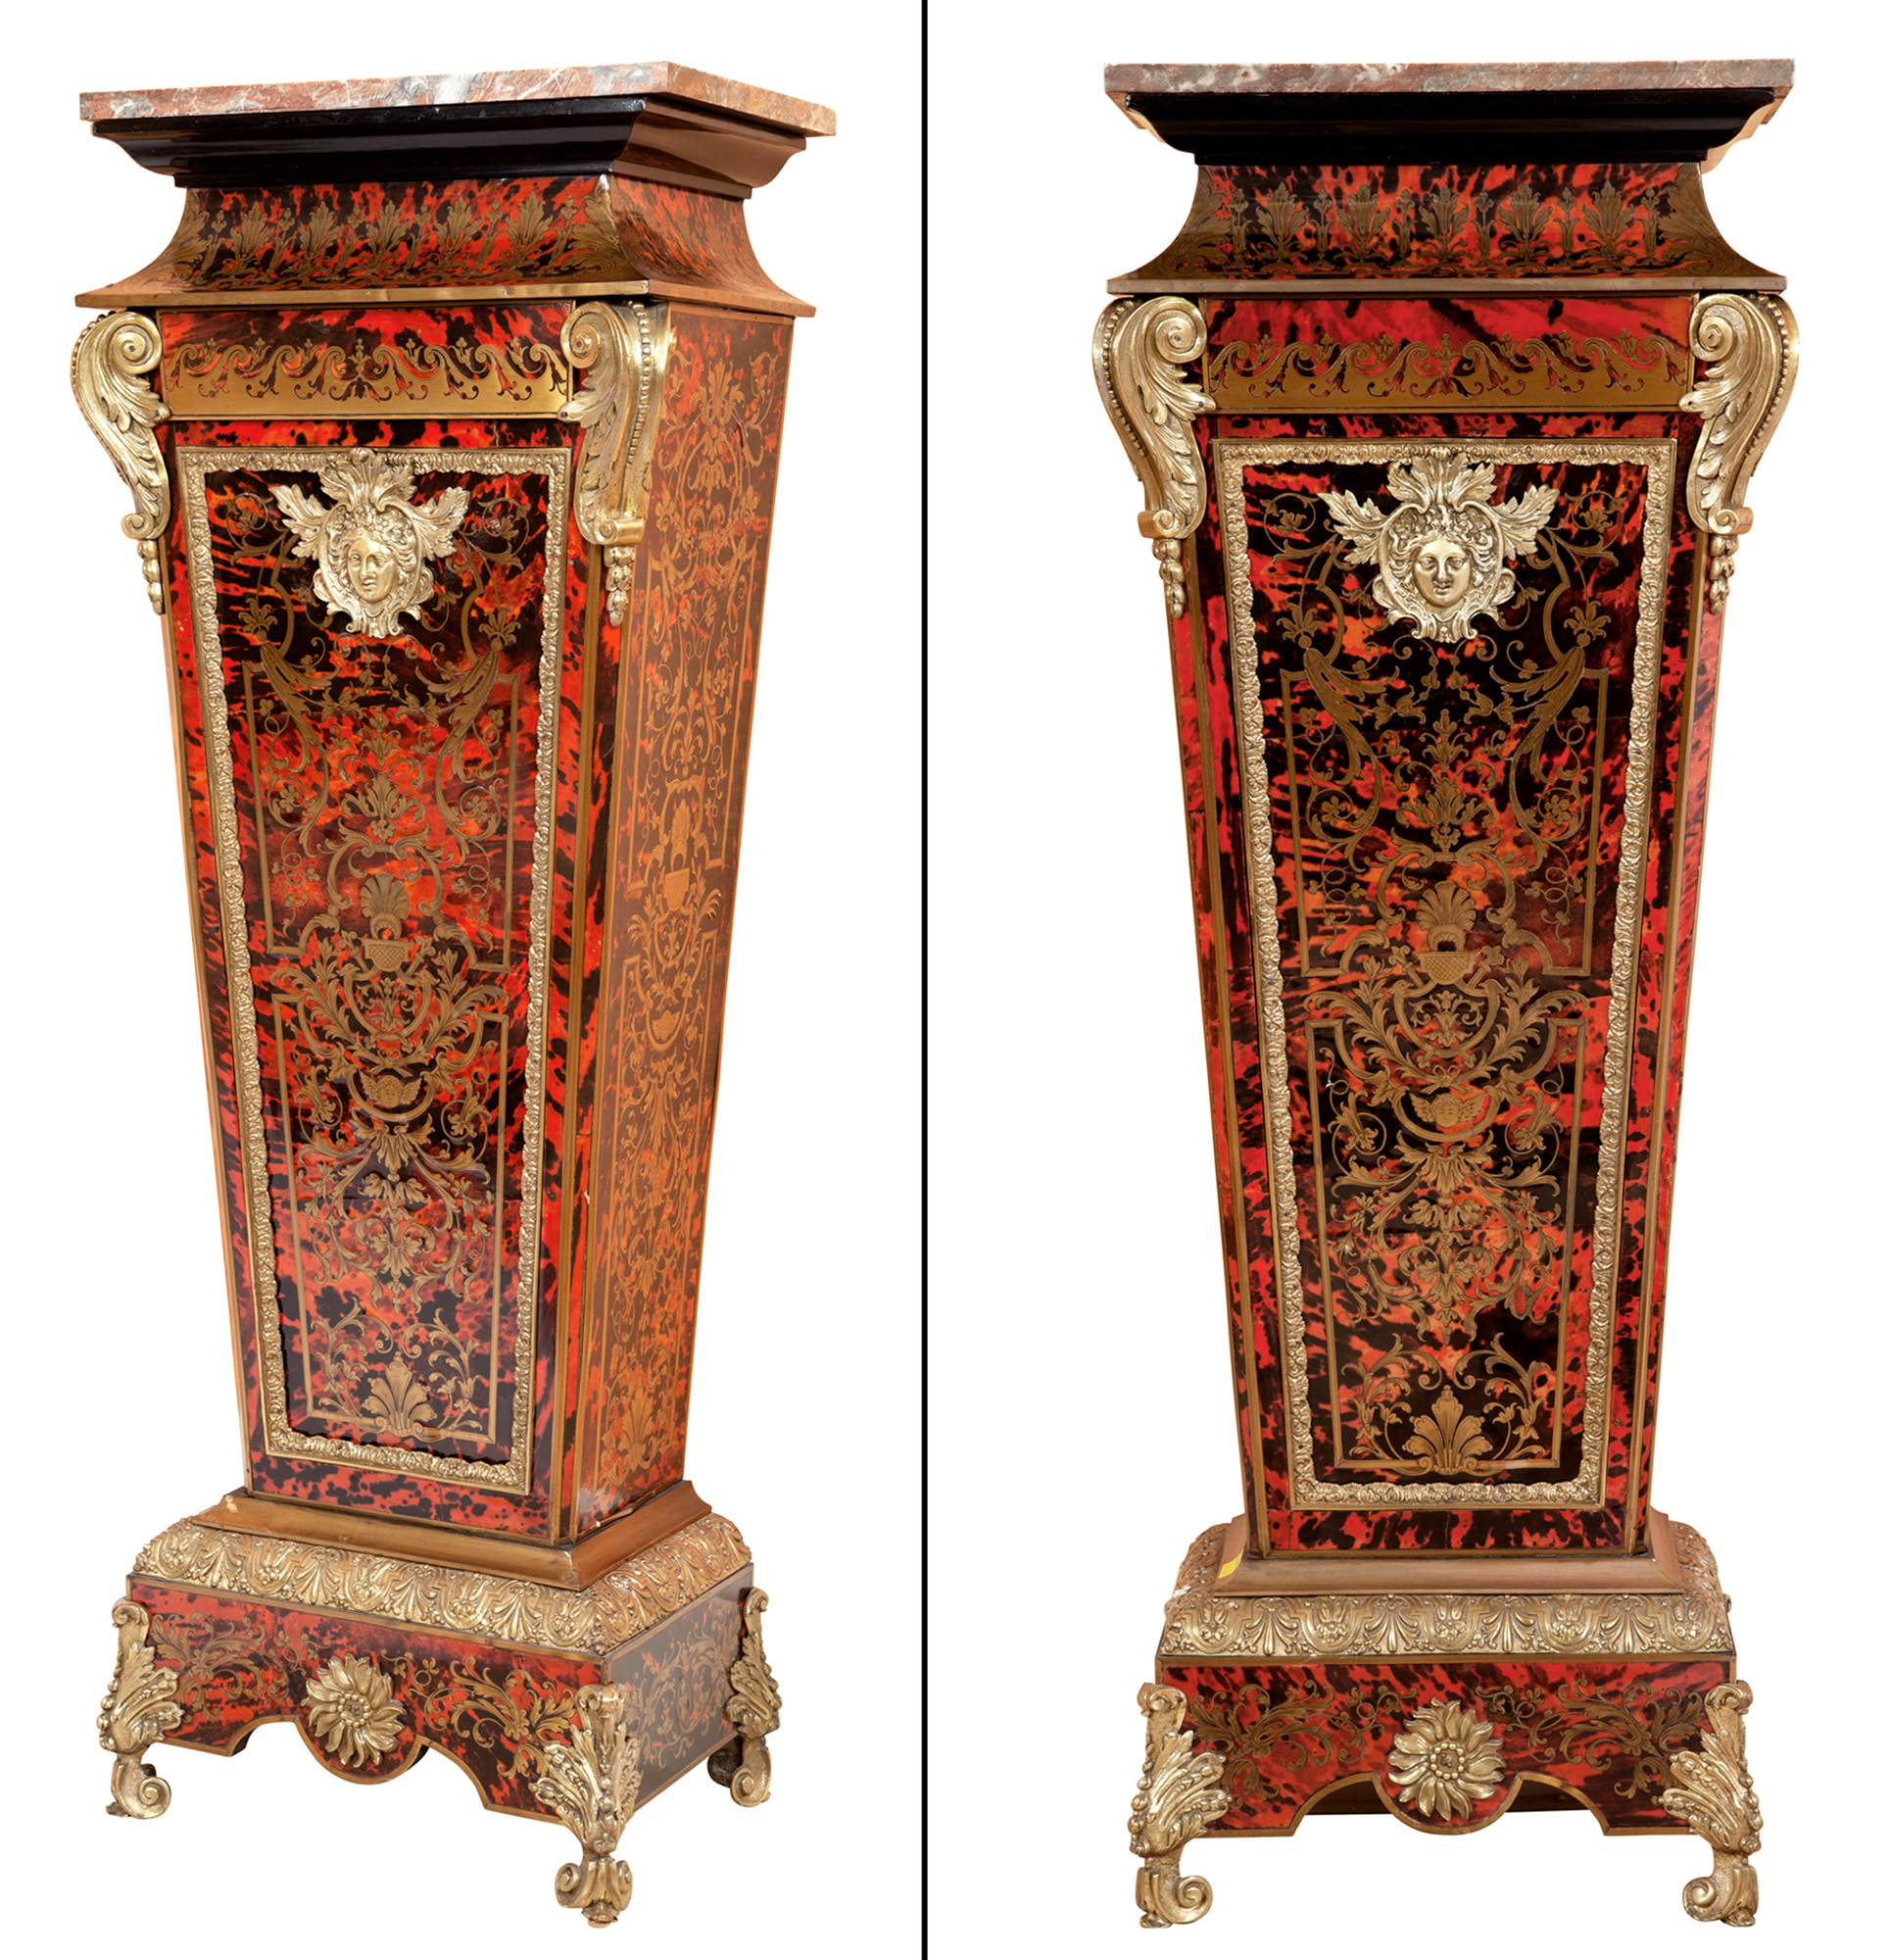 Lot image - Pair of Louis XIV Style Tortoiseshell, Brass-Inlaid Boulle Marquetry and Gilt-Metal-Mounted Marble Top Pedestals